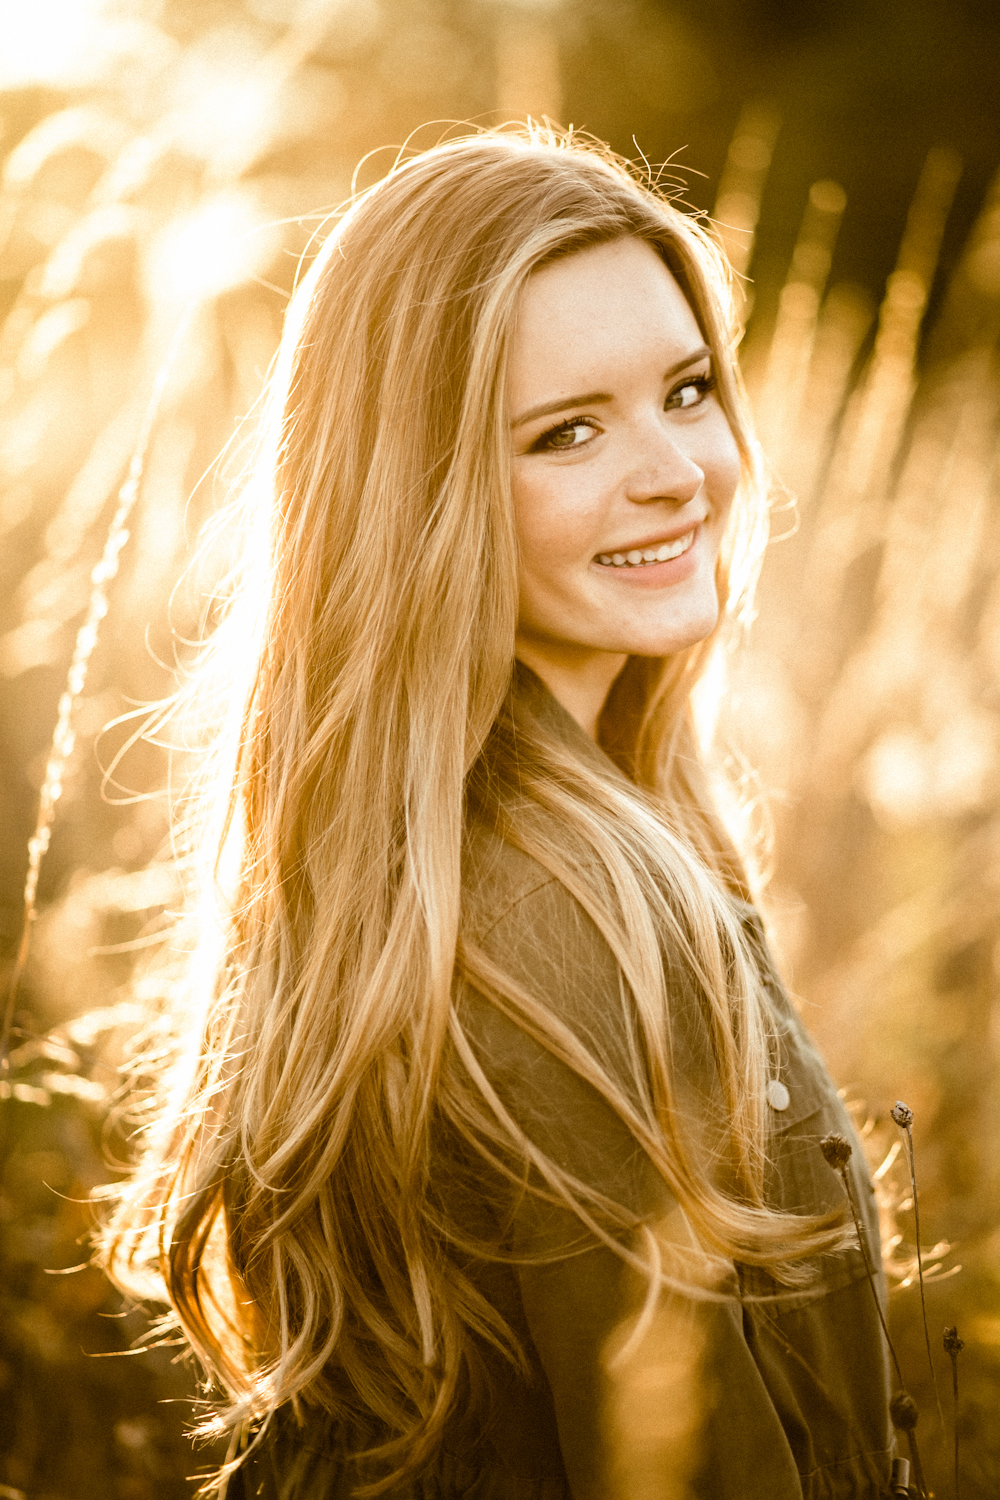 High School senior picture photography in west lafayette indiana